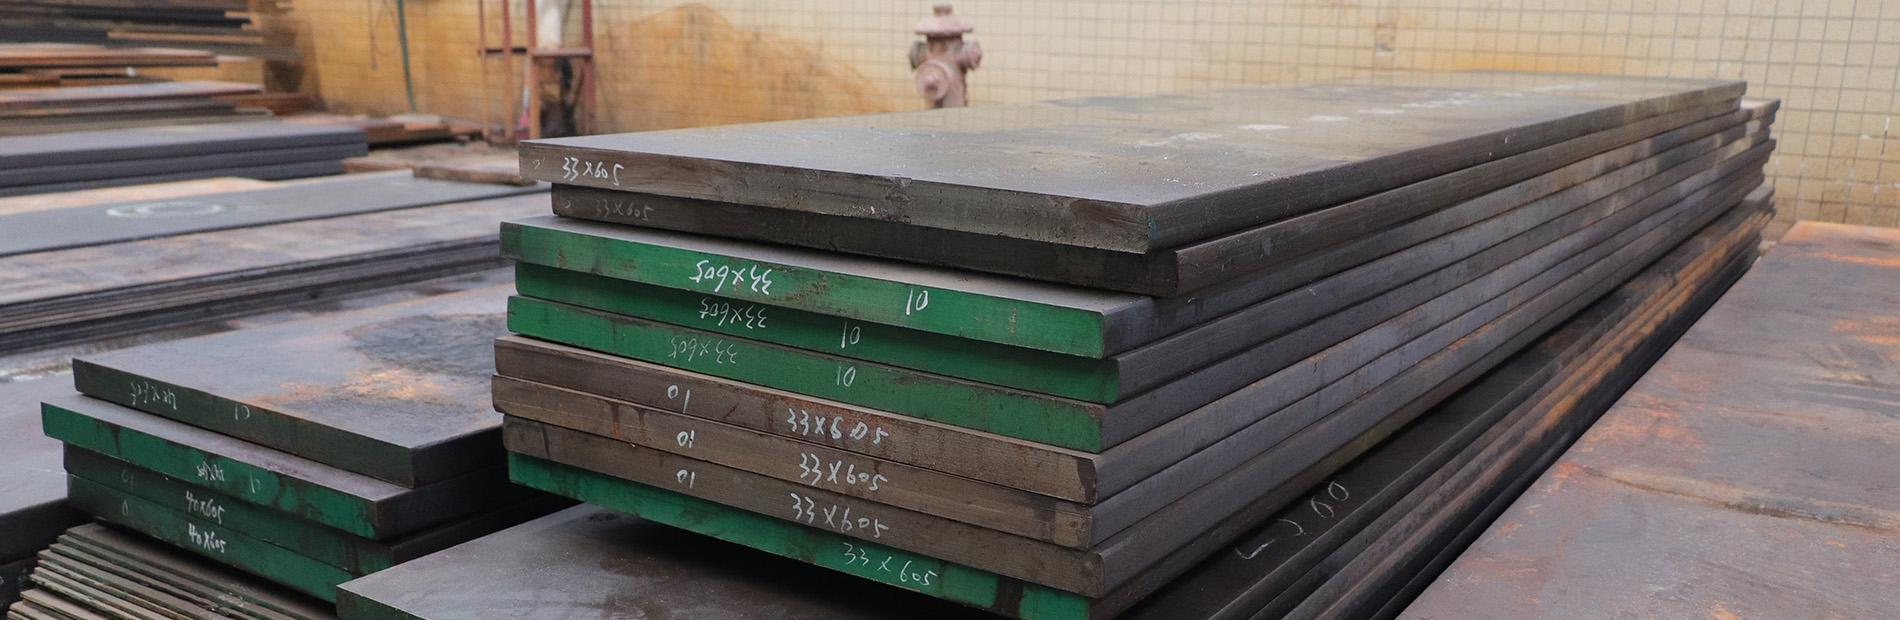 Cold work mold steel